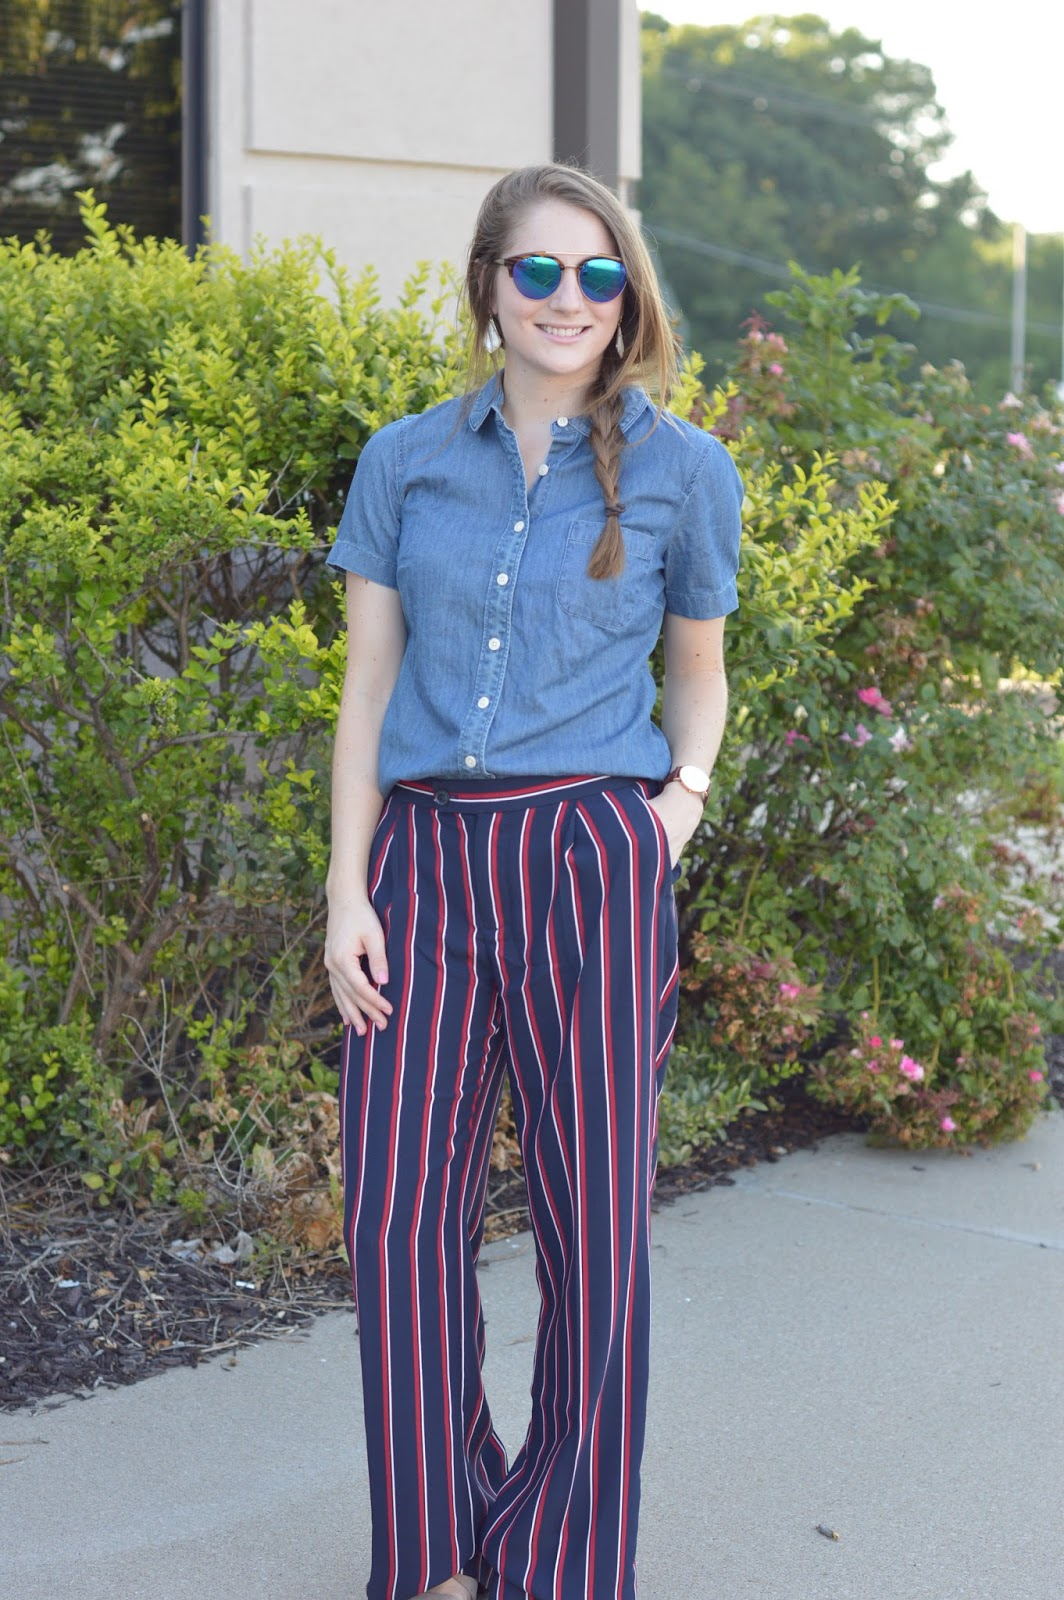 how to style striped dress pants | striped dress pants with a chambray top | new ways to style a chambray top | how to dress for work and still look cute | how to keep your personal style in a business environment | a memory of us